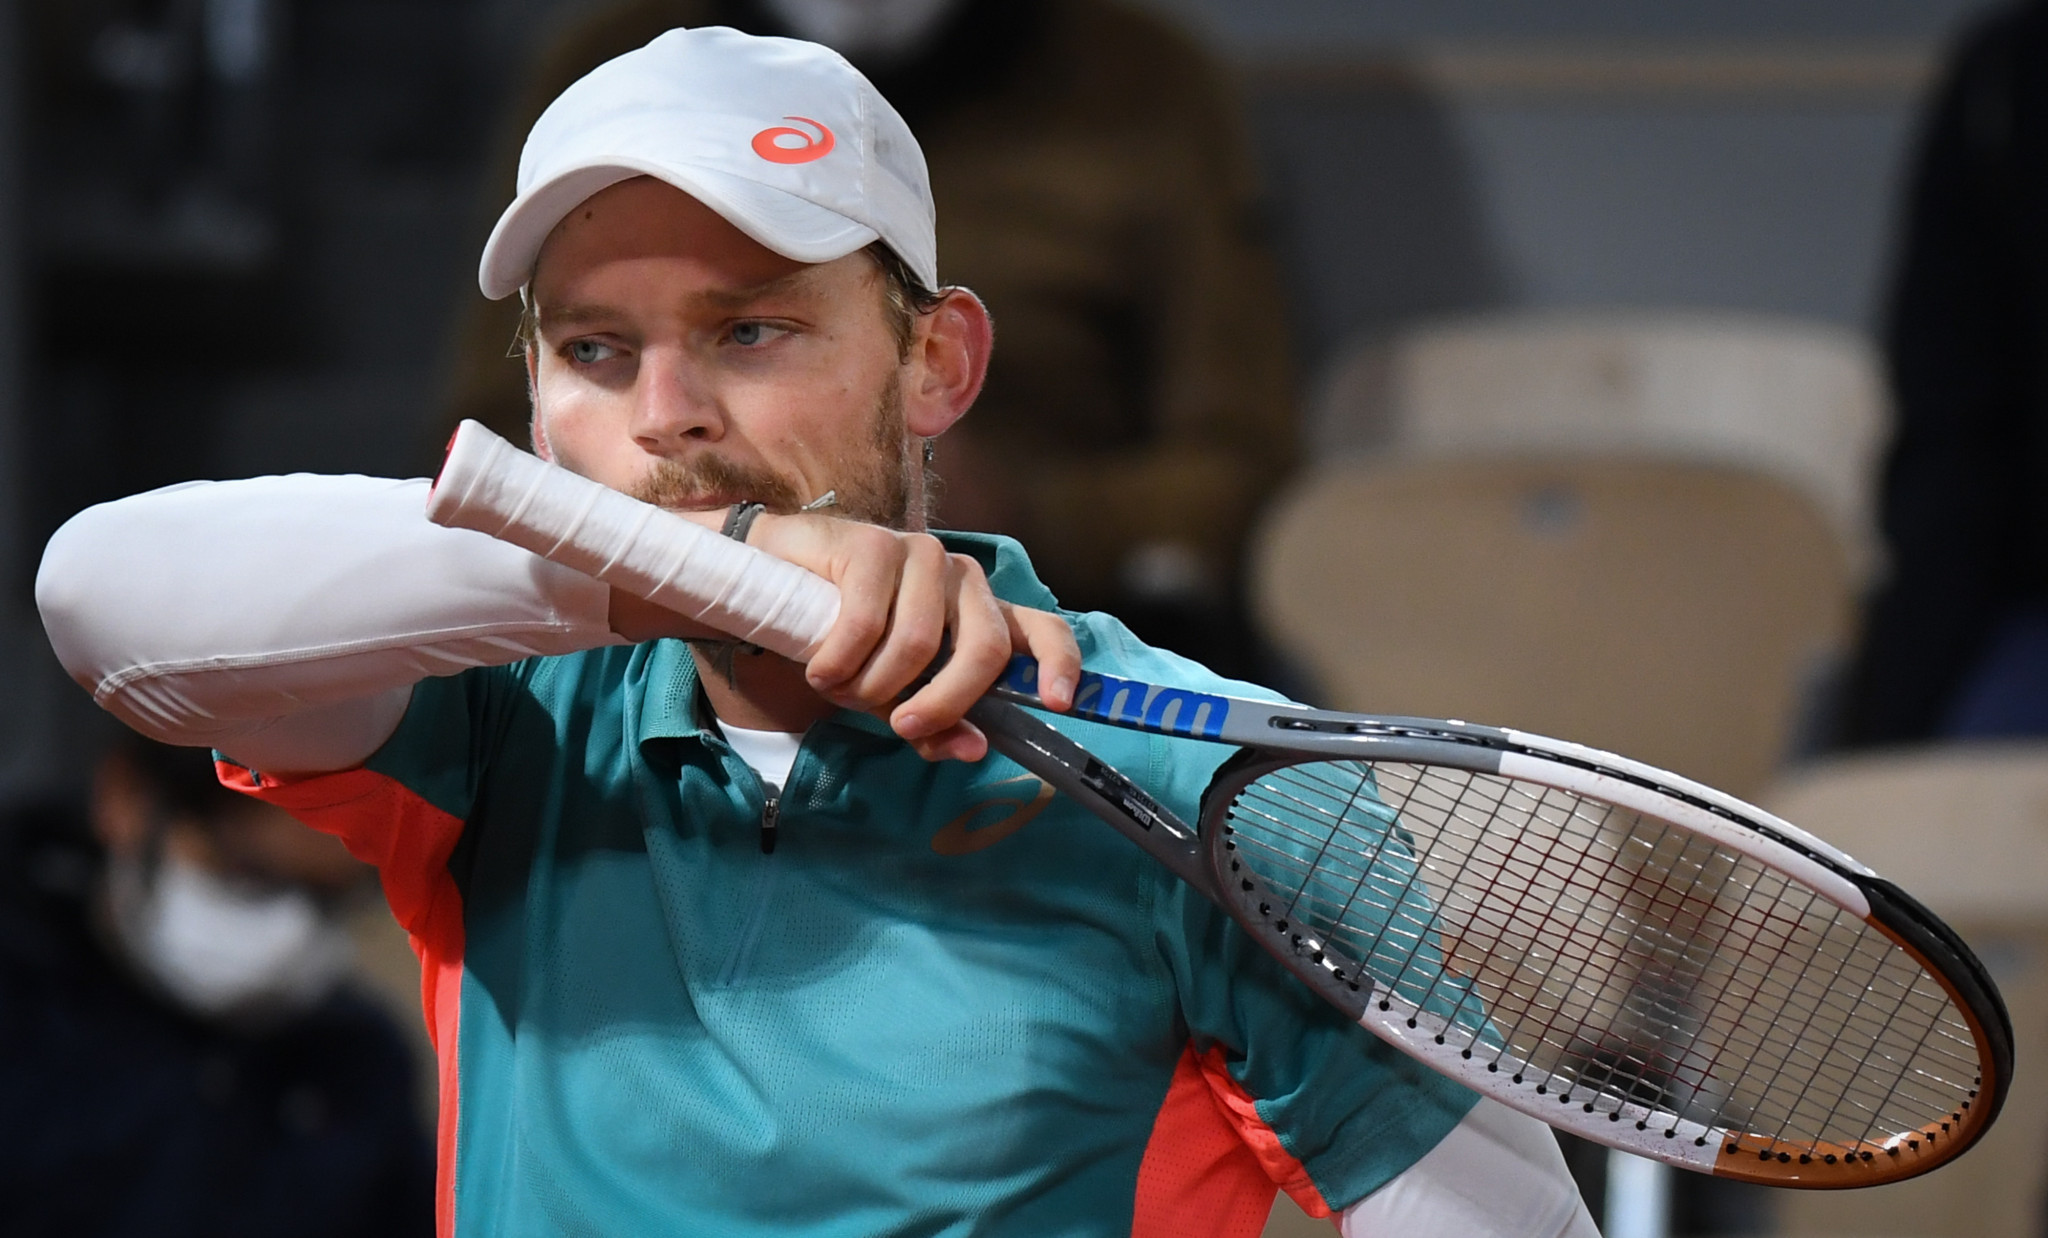 Belgium's David Goffin - seeded 11th - was shocked by Italian teenager Jannik Sinner and is the top-ranked casualty in the men's singles so far ©Getty Images